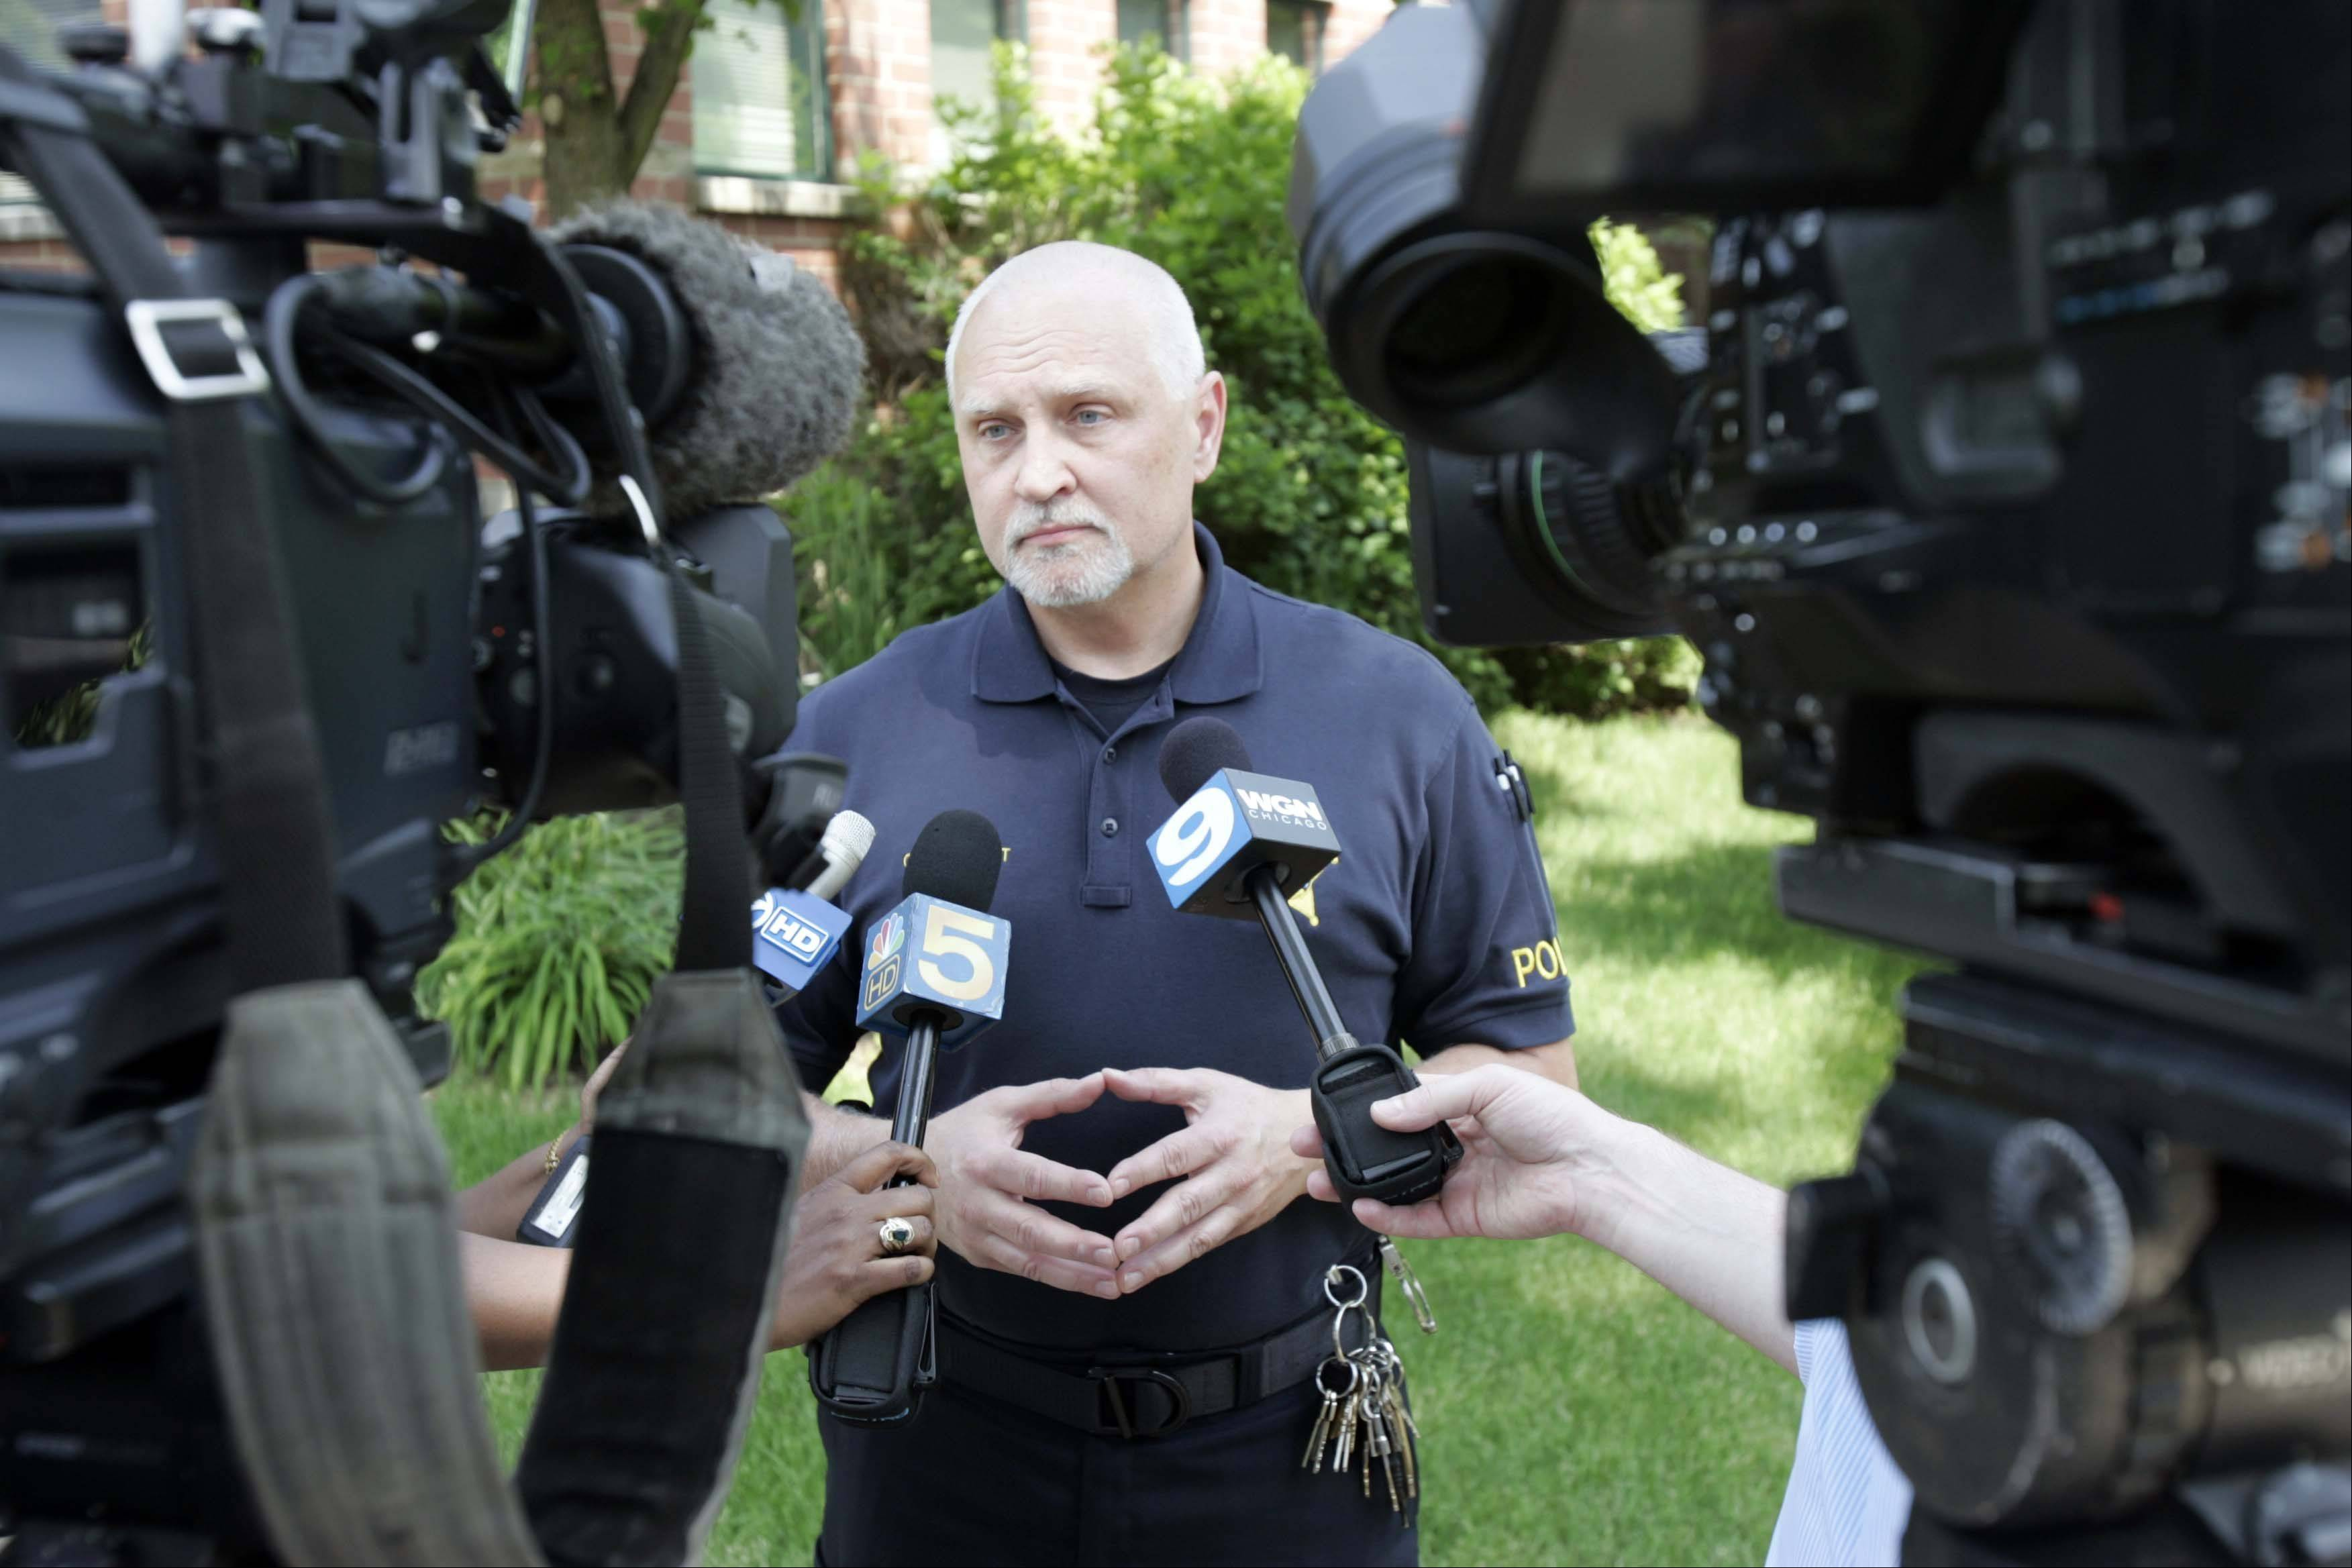 Prospect Heights Police Cmdr. Eric Lundt talks about the crash that killed three teens Saturday morning across the street from the police station.